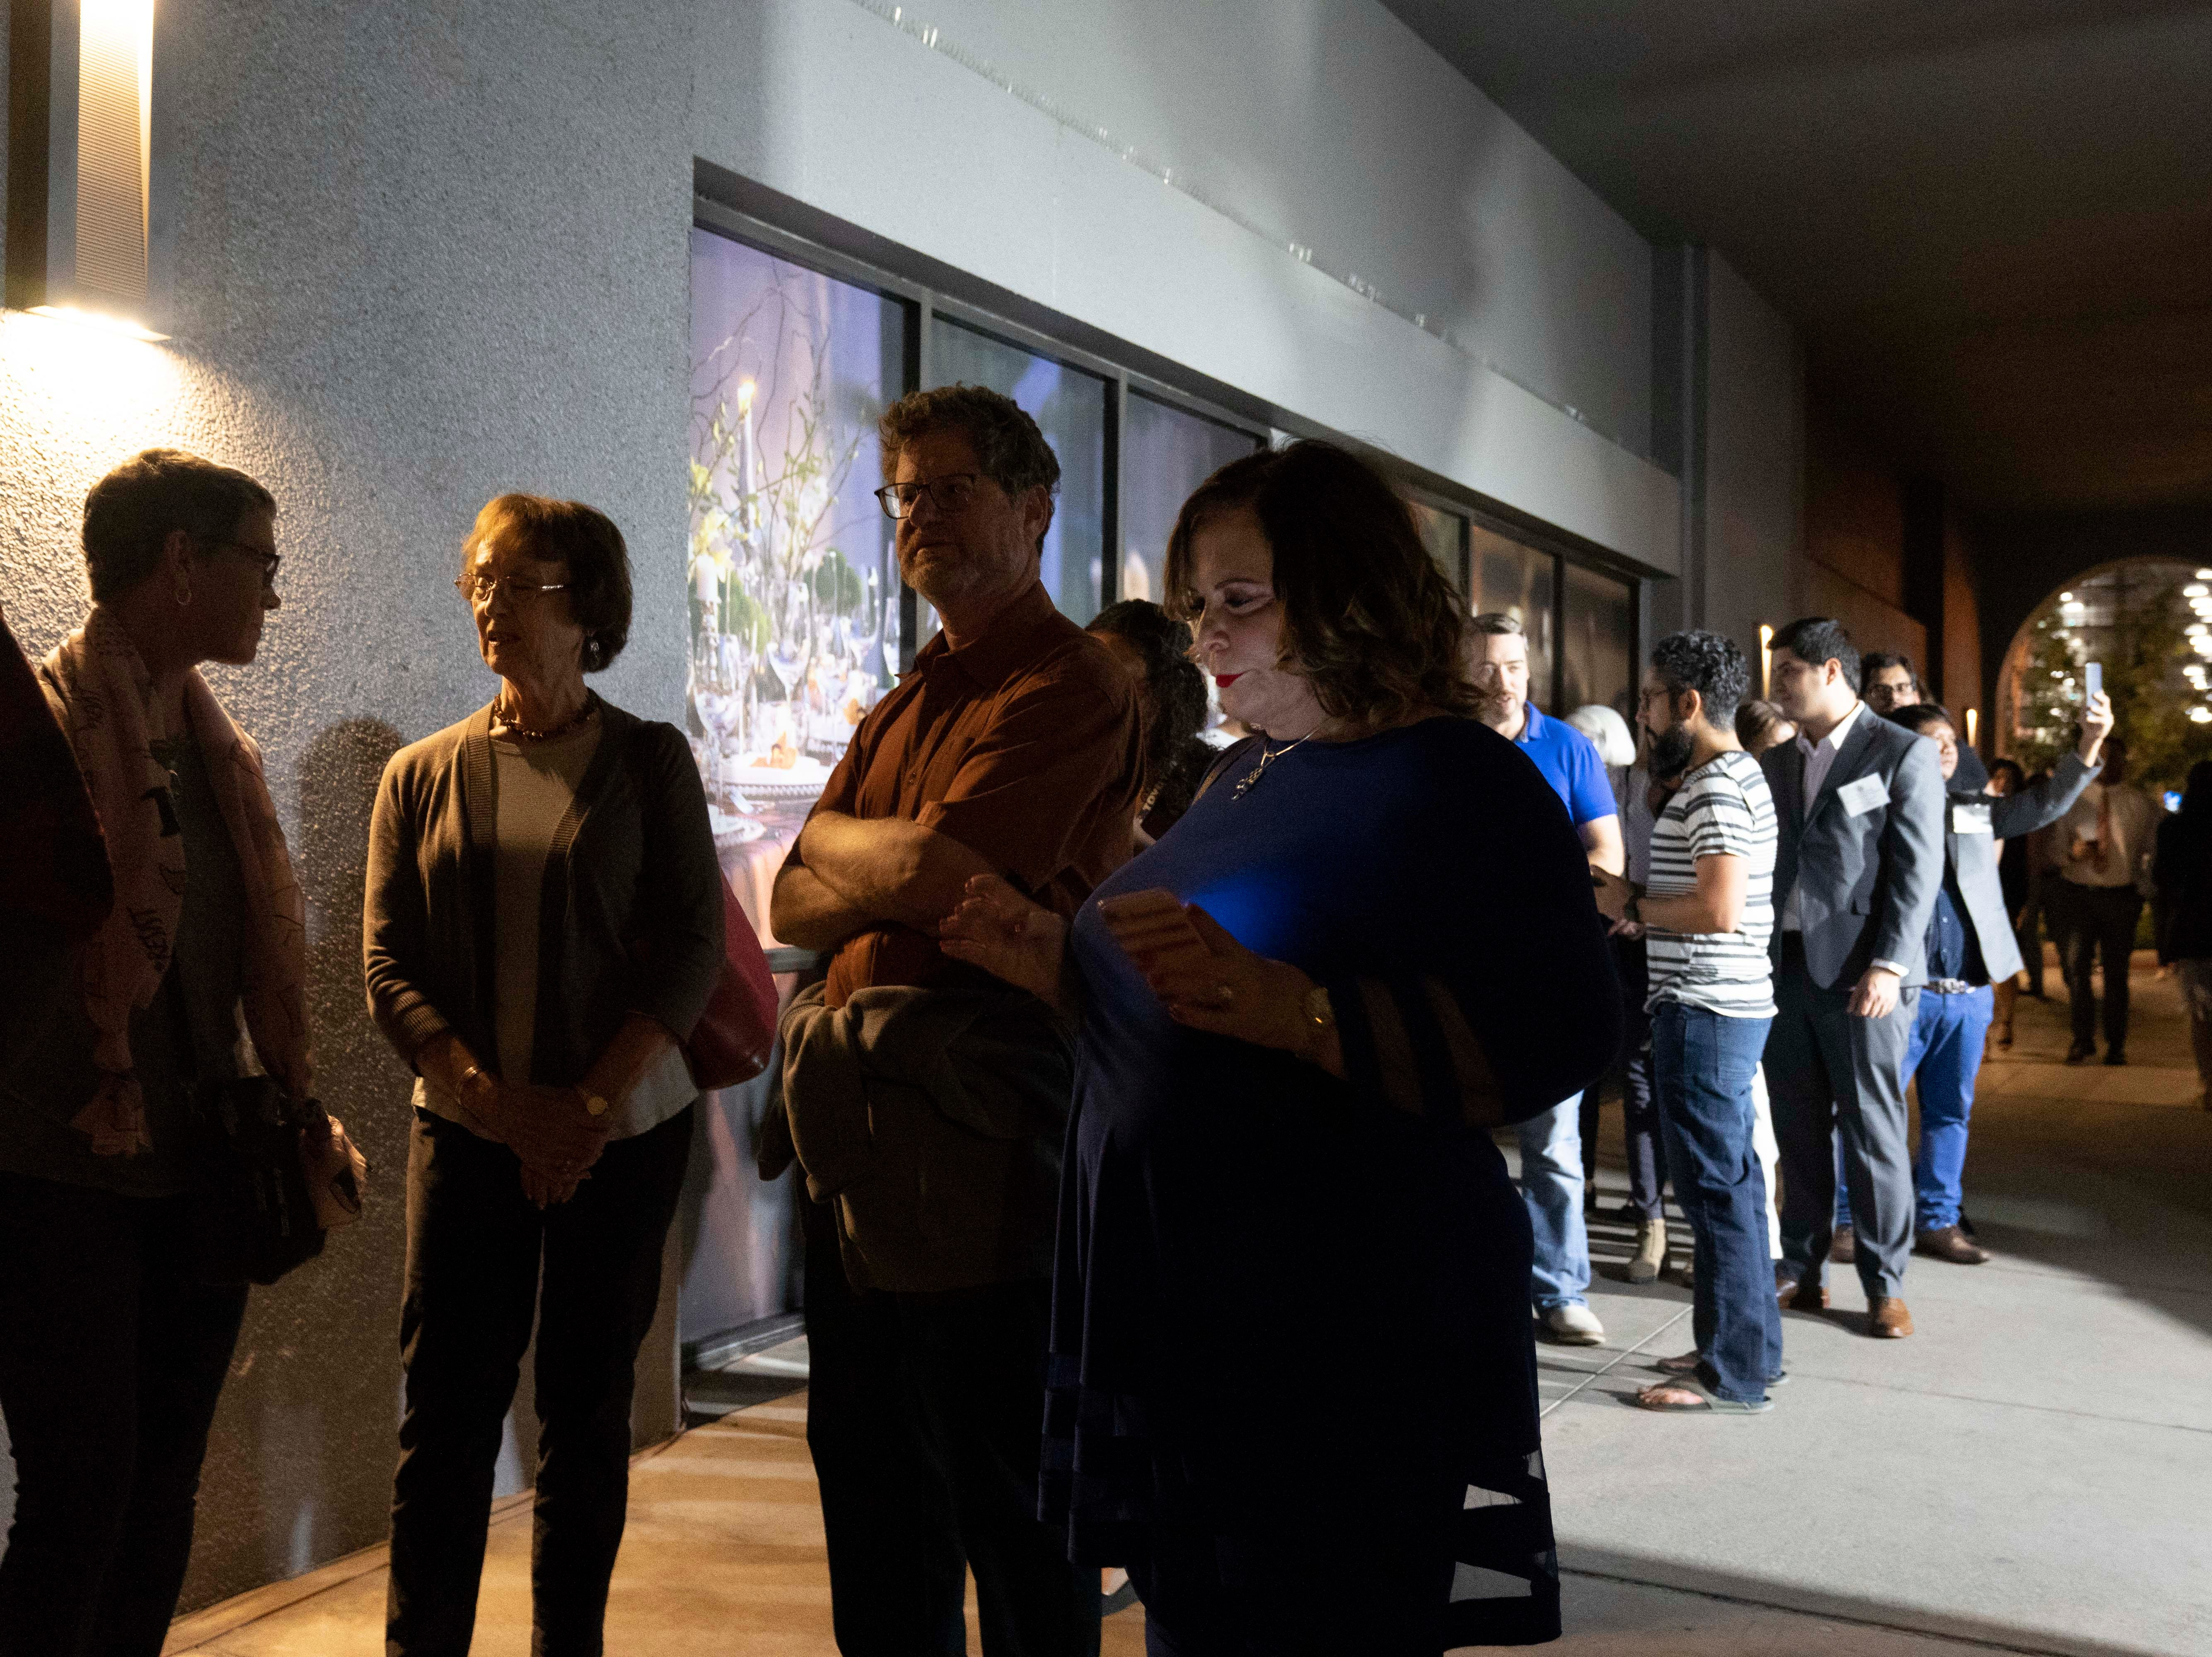 Democrat supporters wait in line to see candidates at the Renaissance Phoenix Downtown Hotel on Nov. 6, 2018.